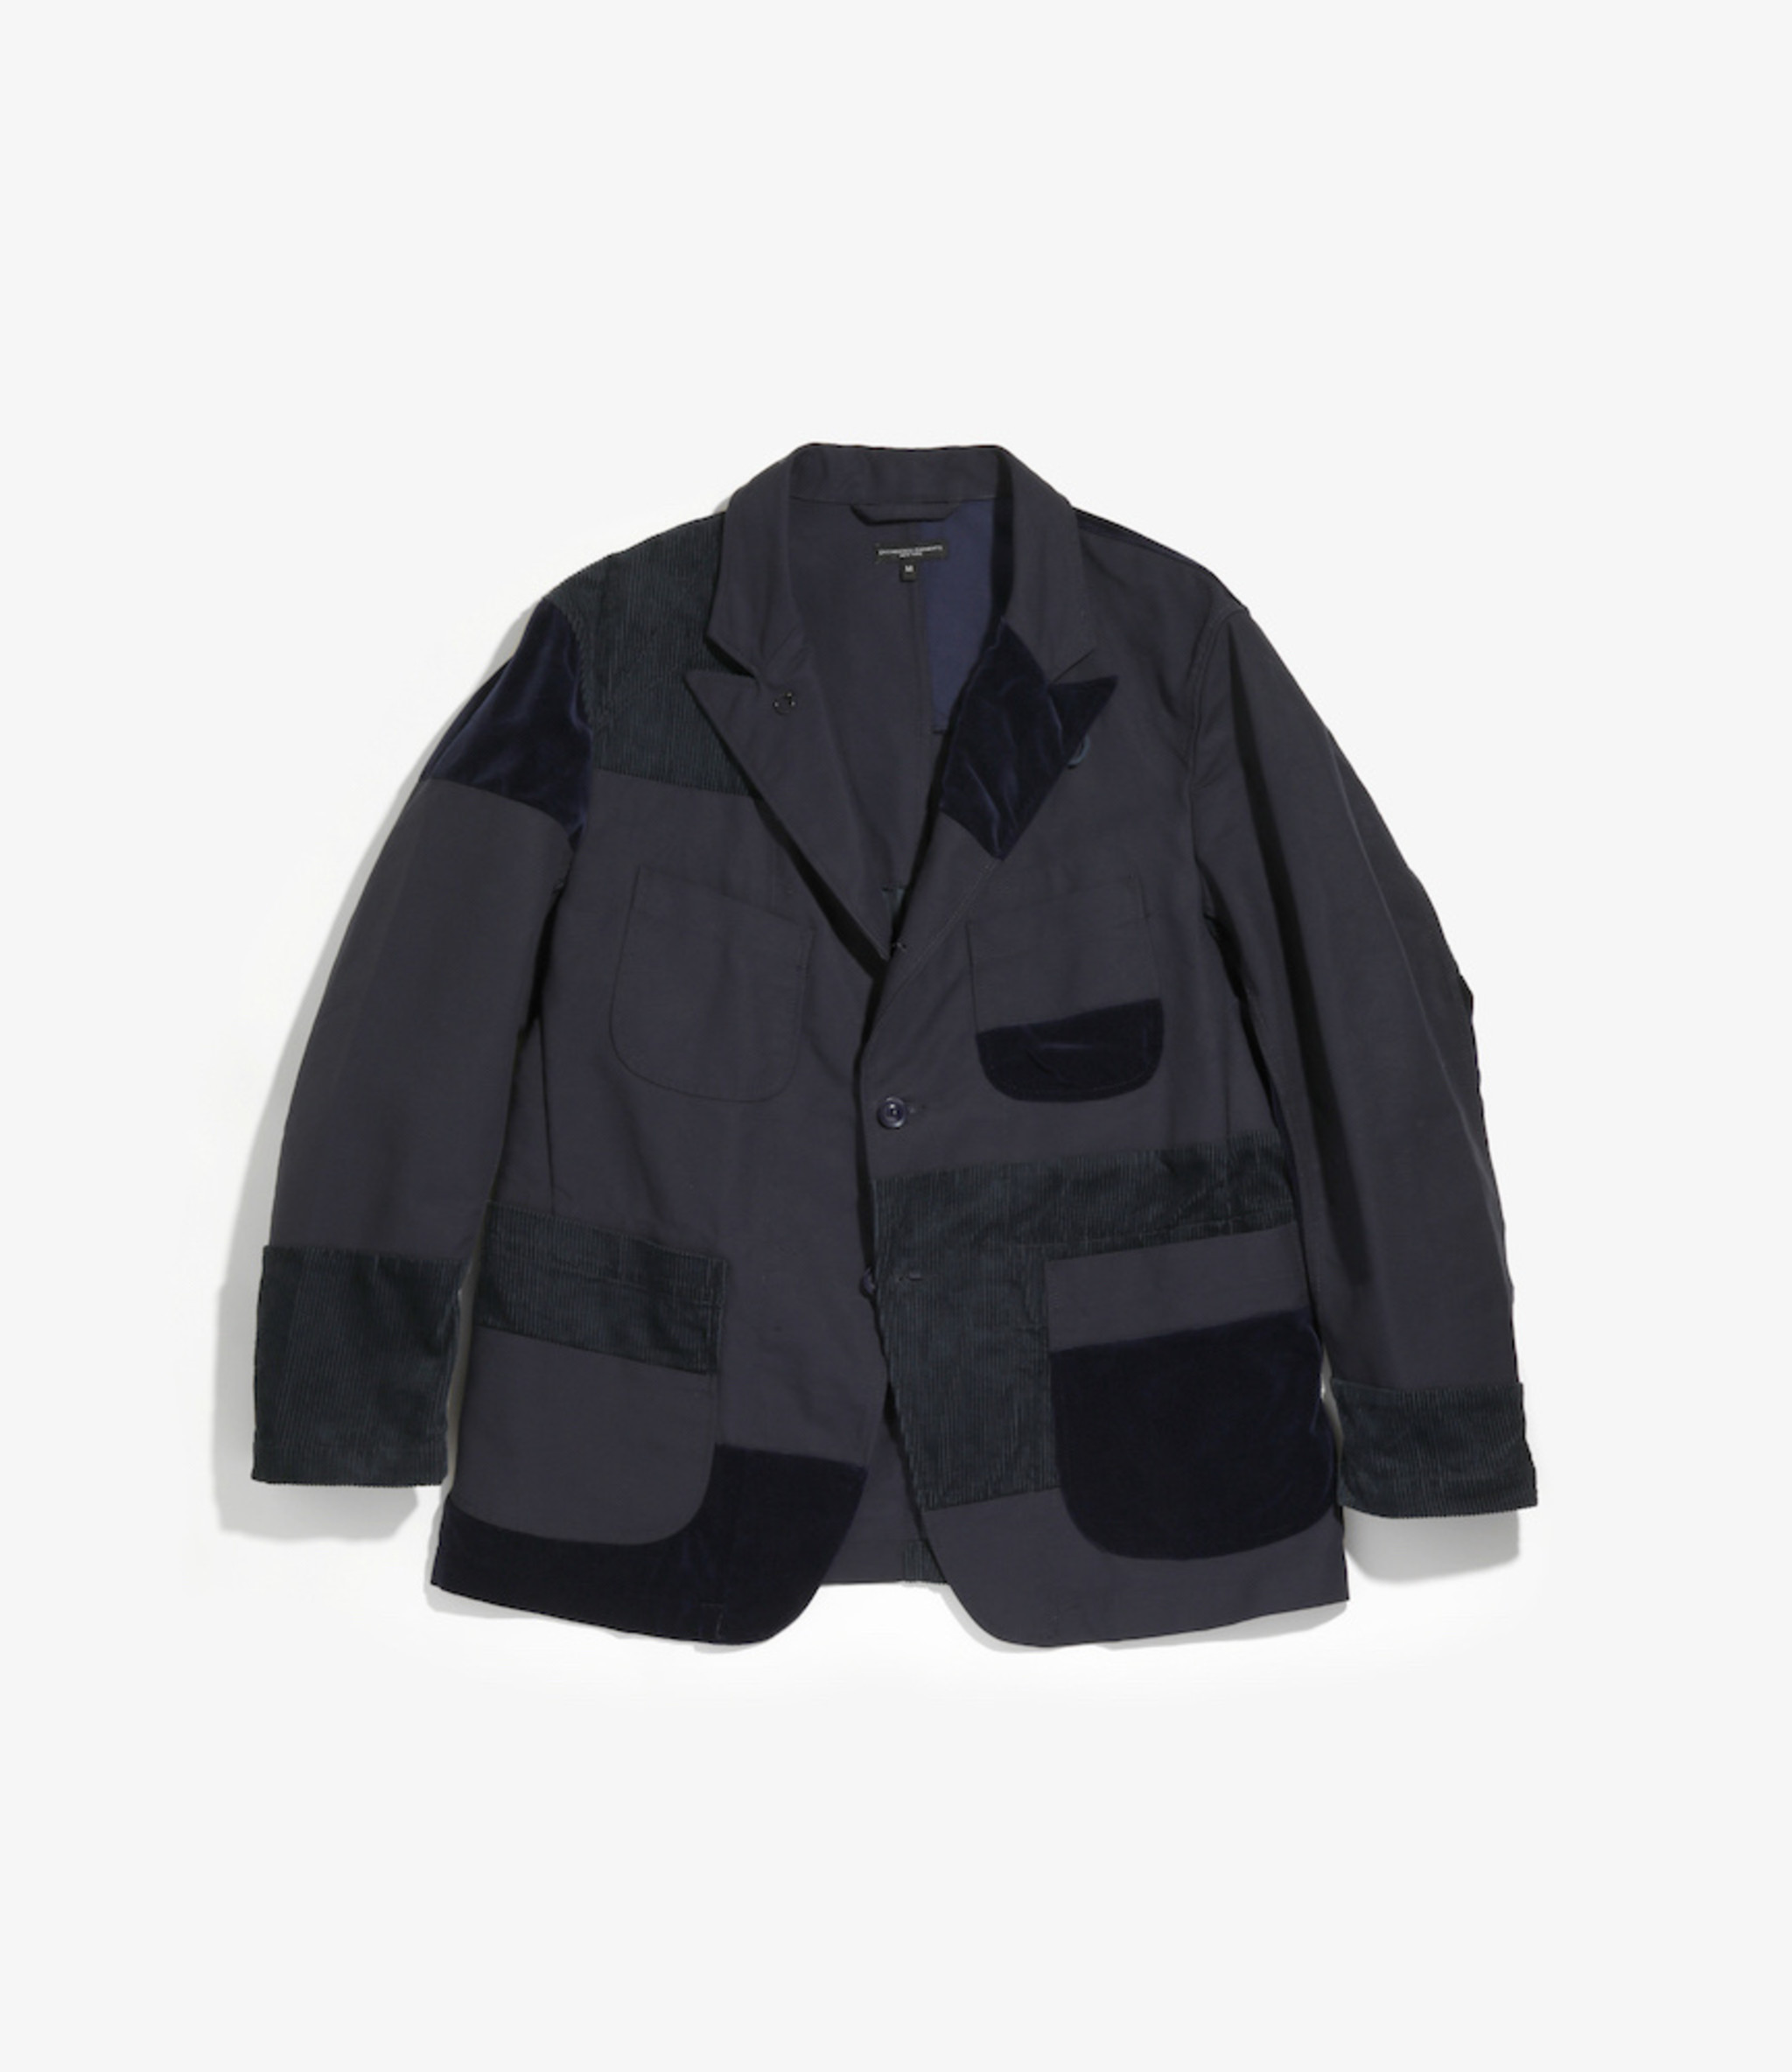 engineered garments bedford engineered garments cover vest